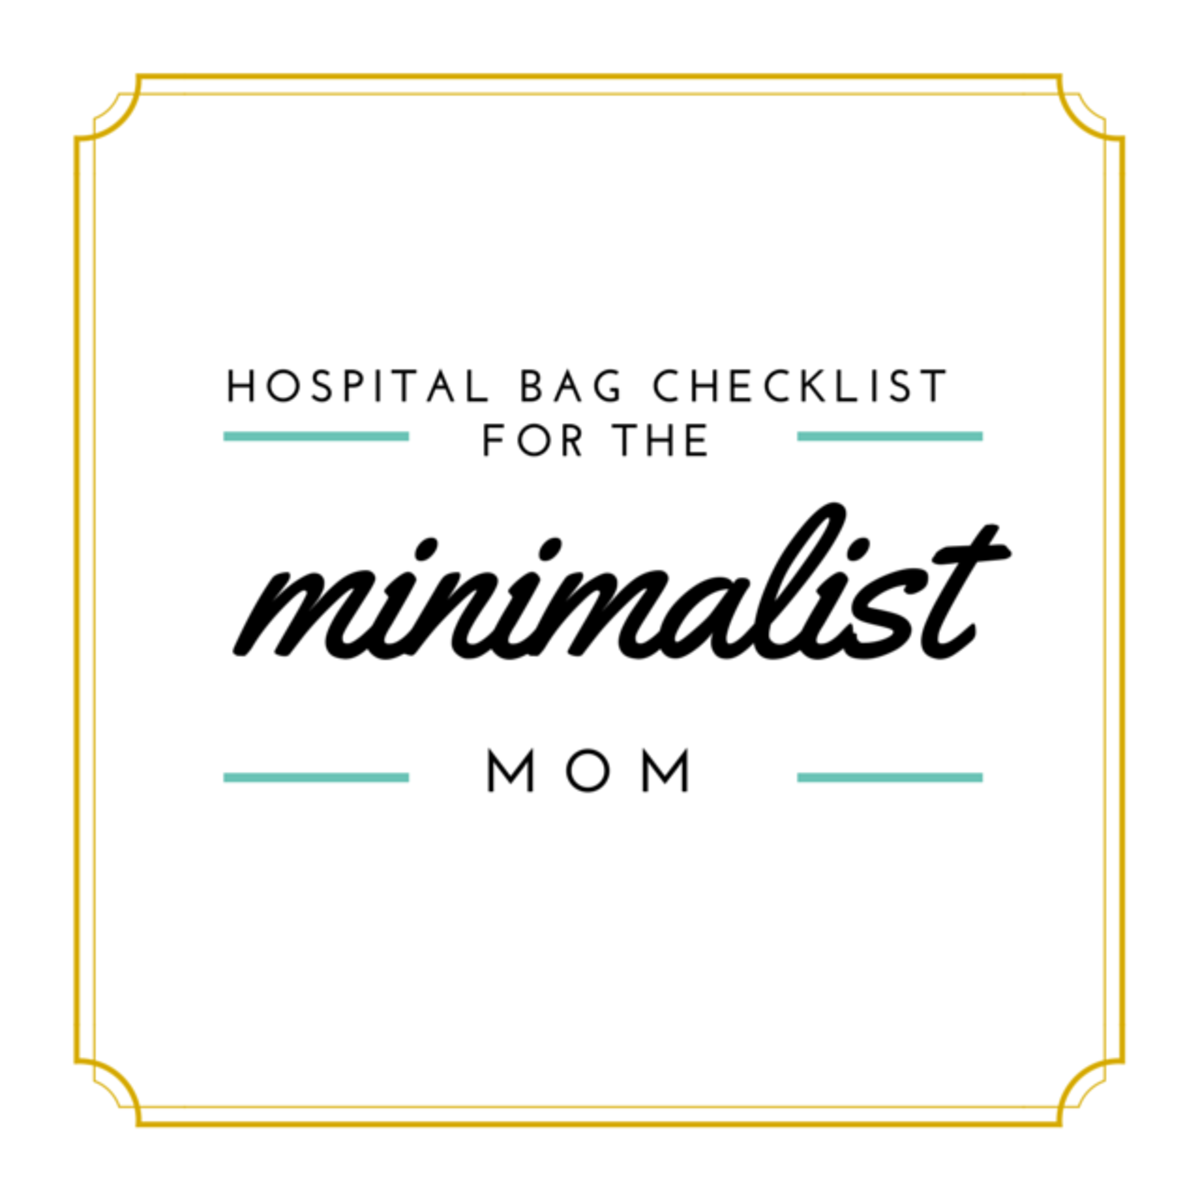 Hospital Bag Checklist for the Minimalist Mom